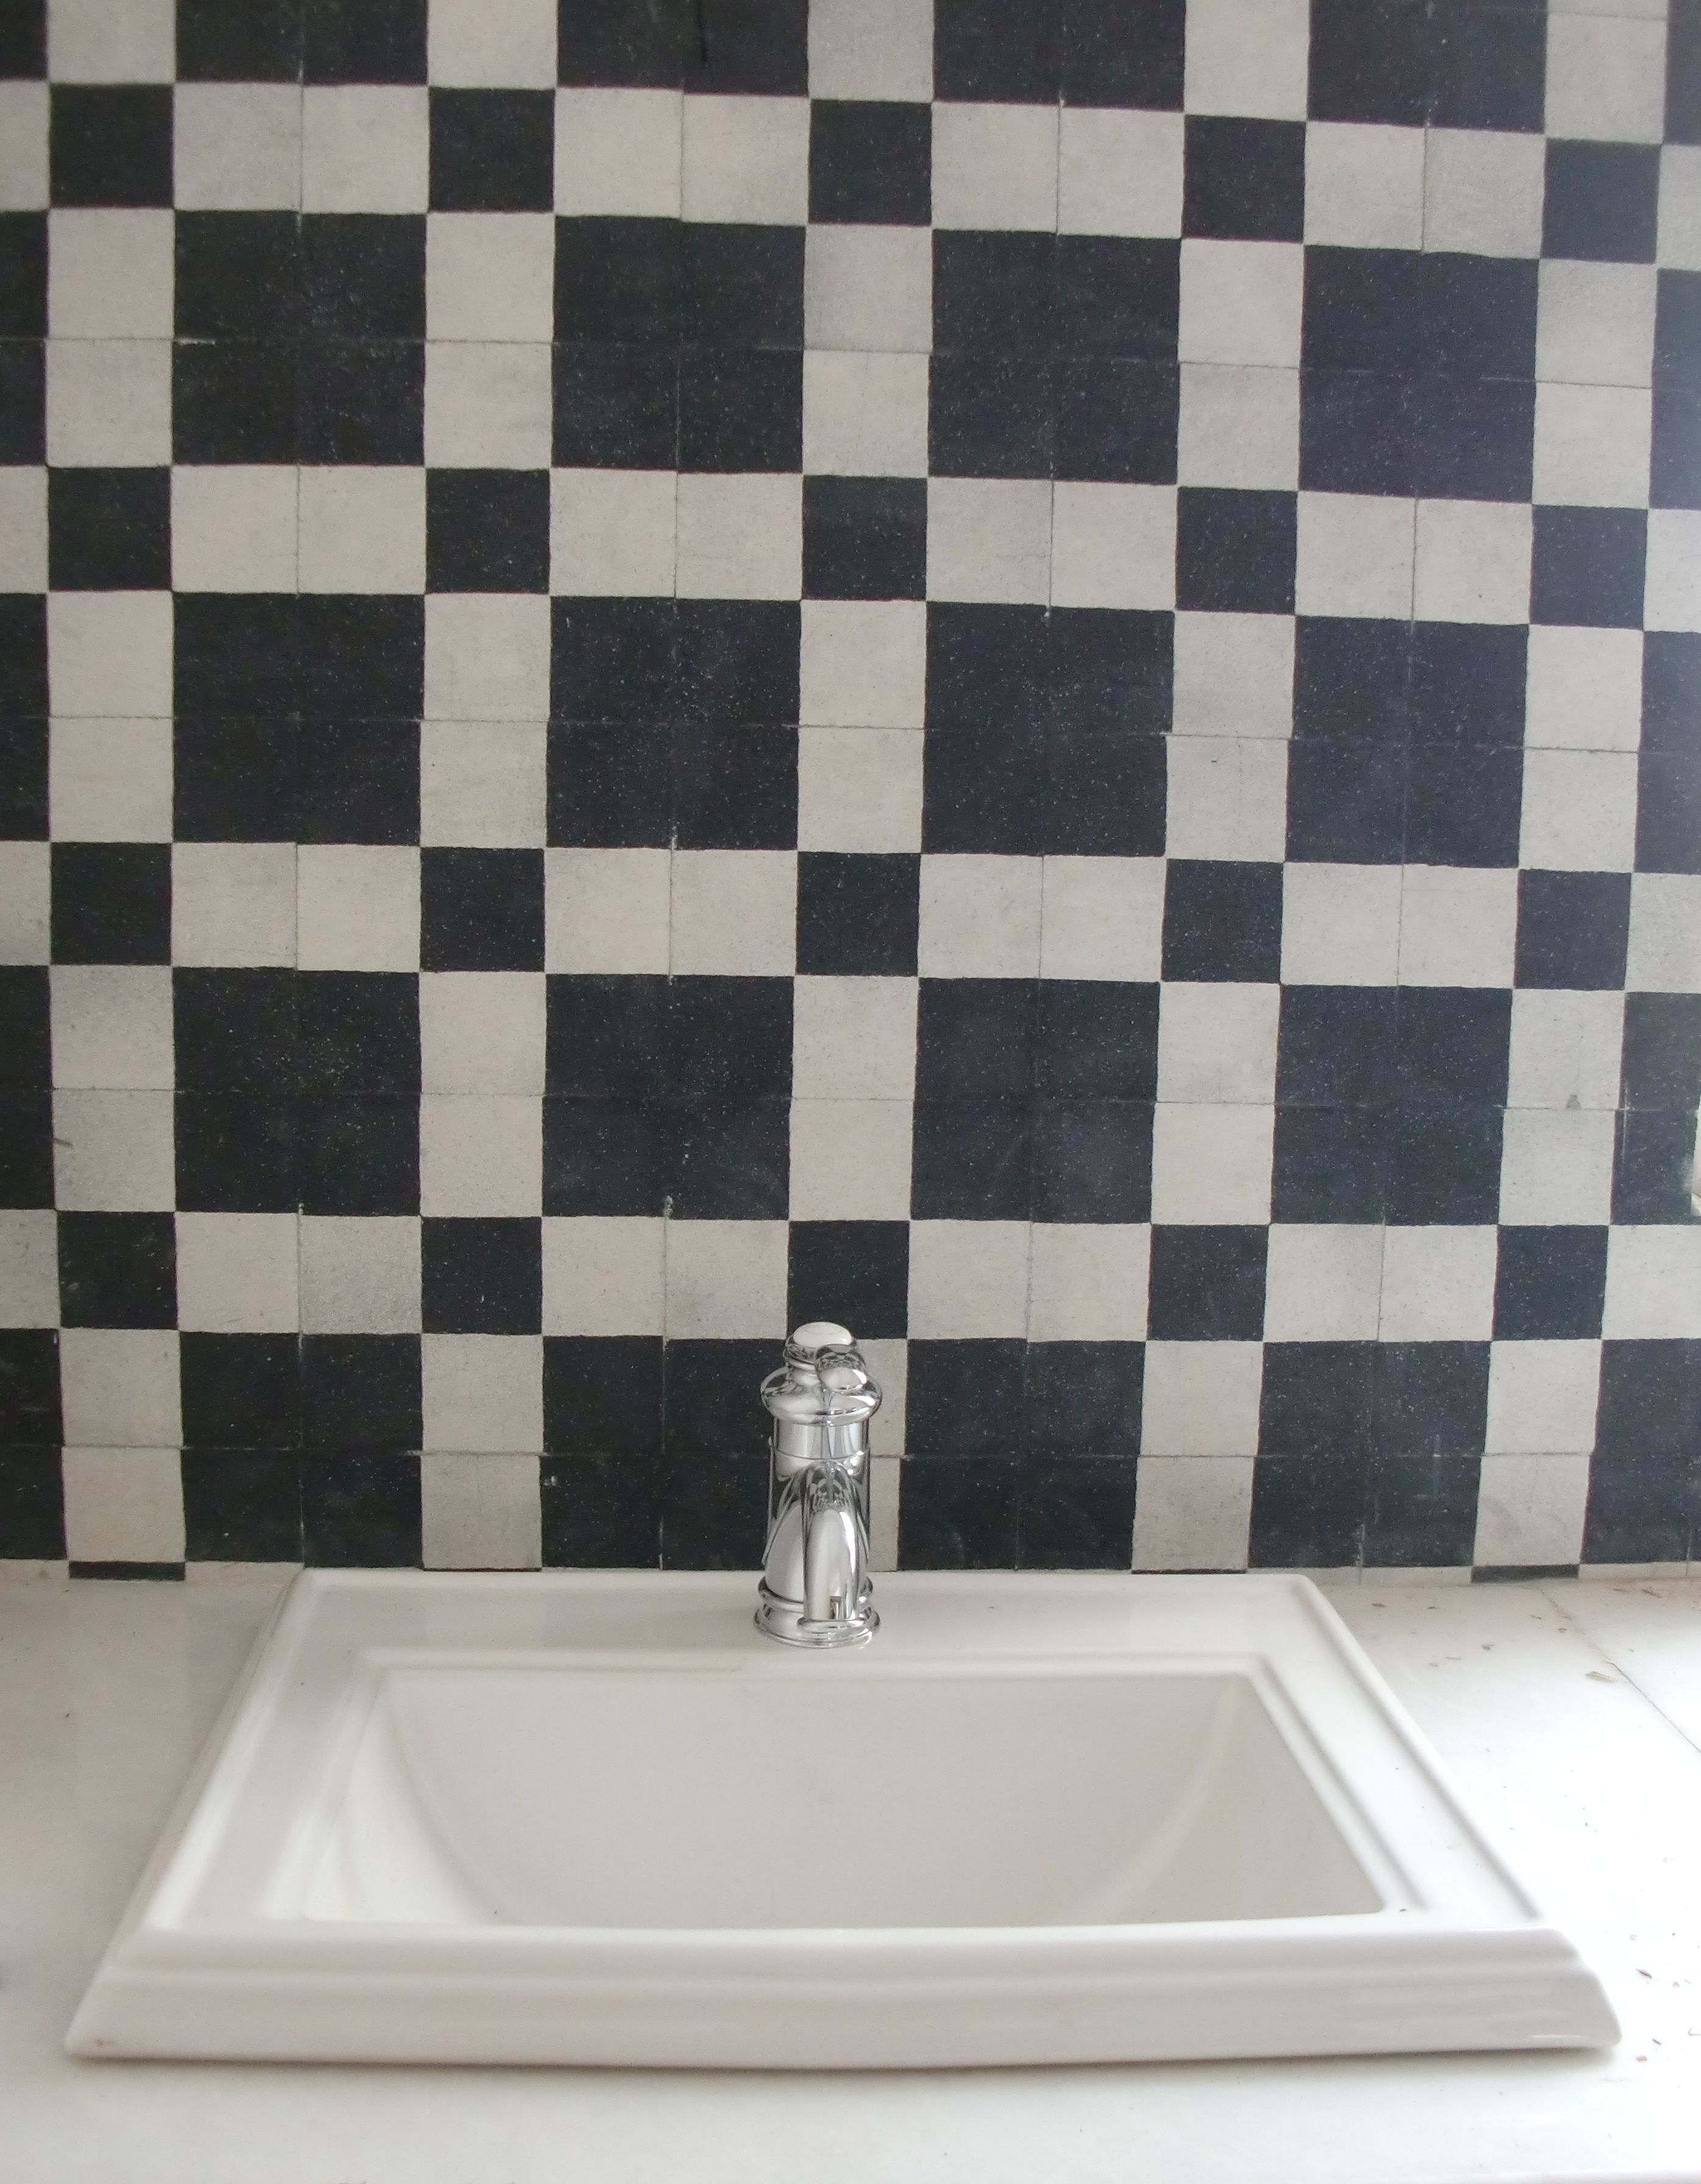 Bathroom in Goa. Heritage Cement tiles in a made to order design ...